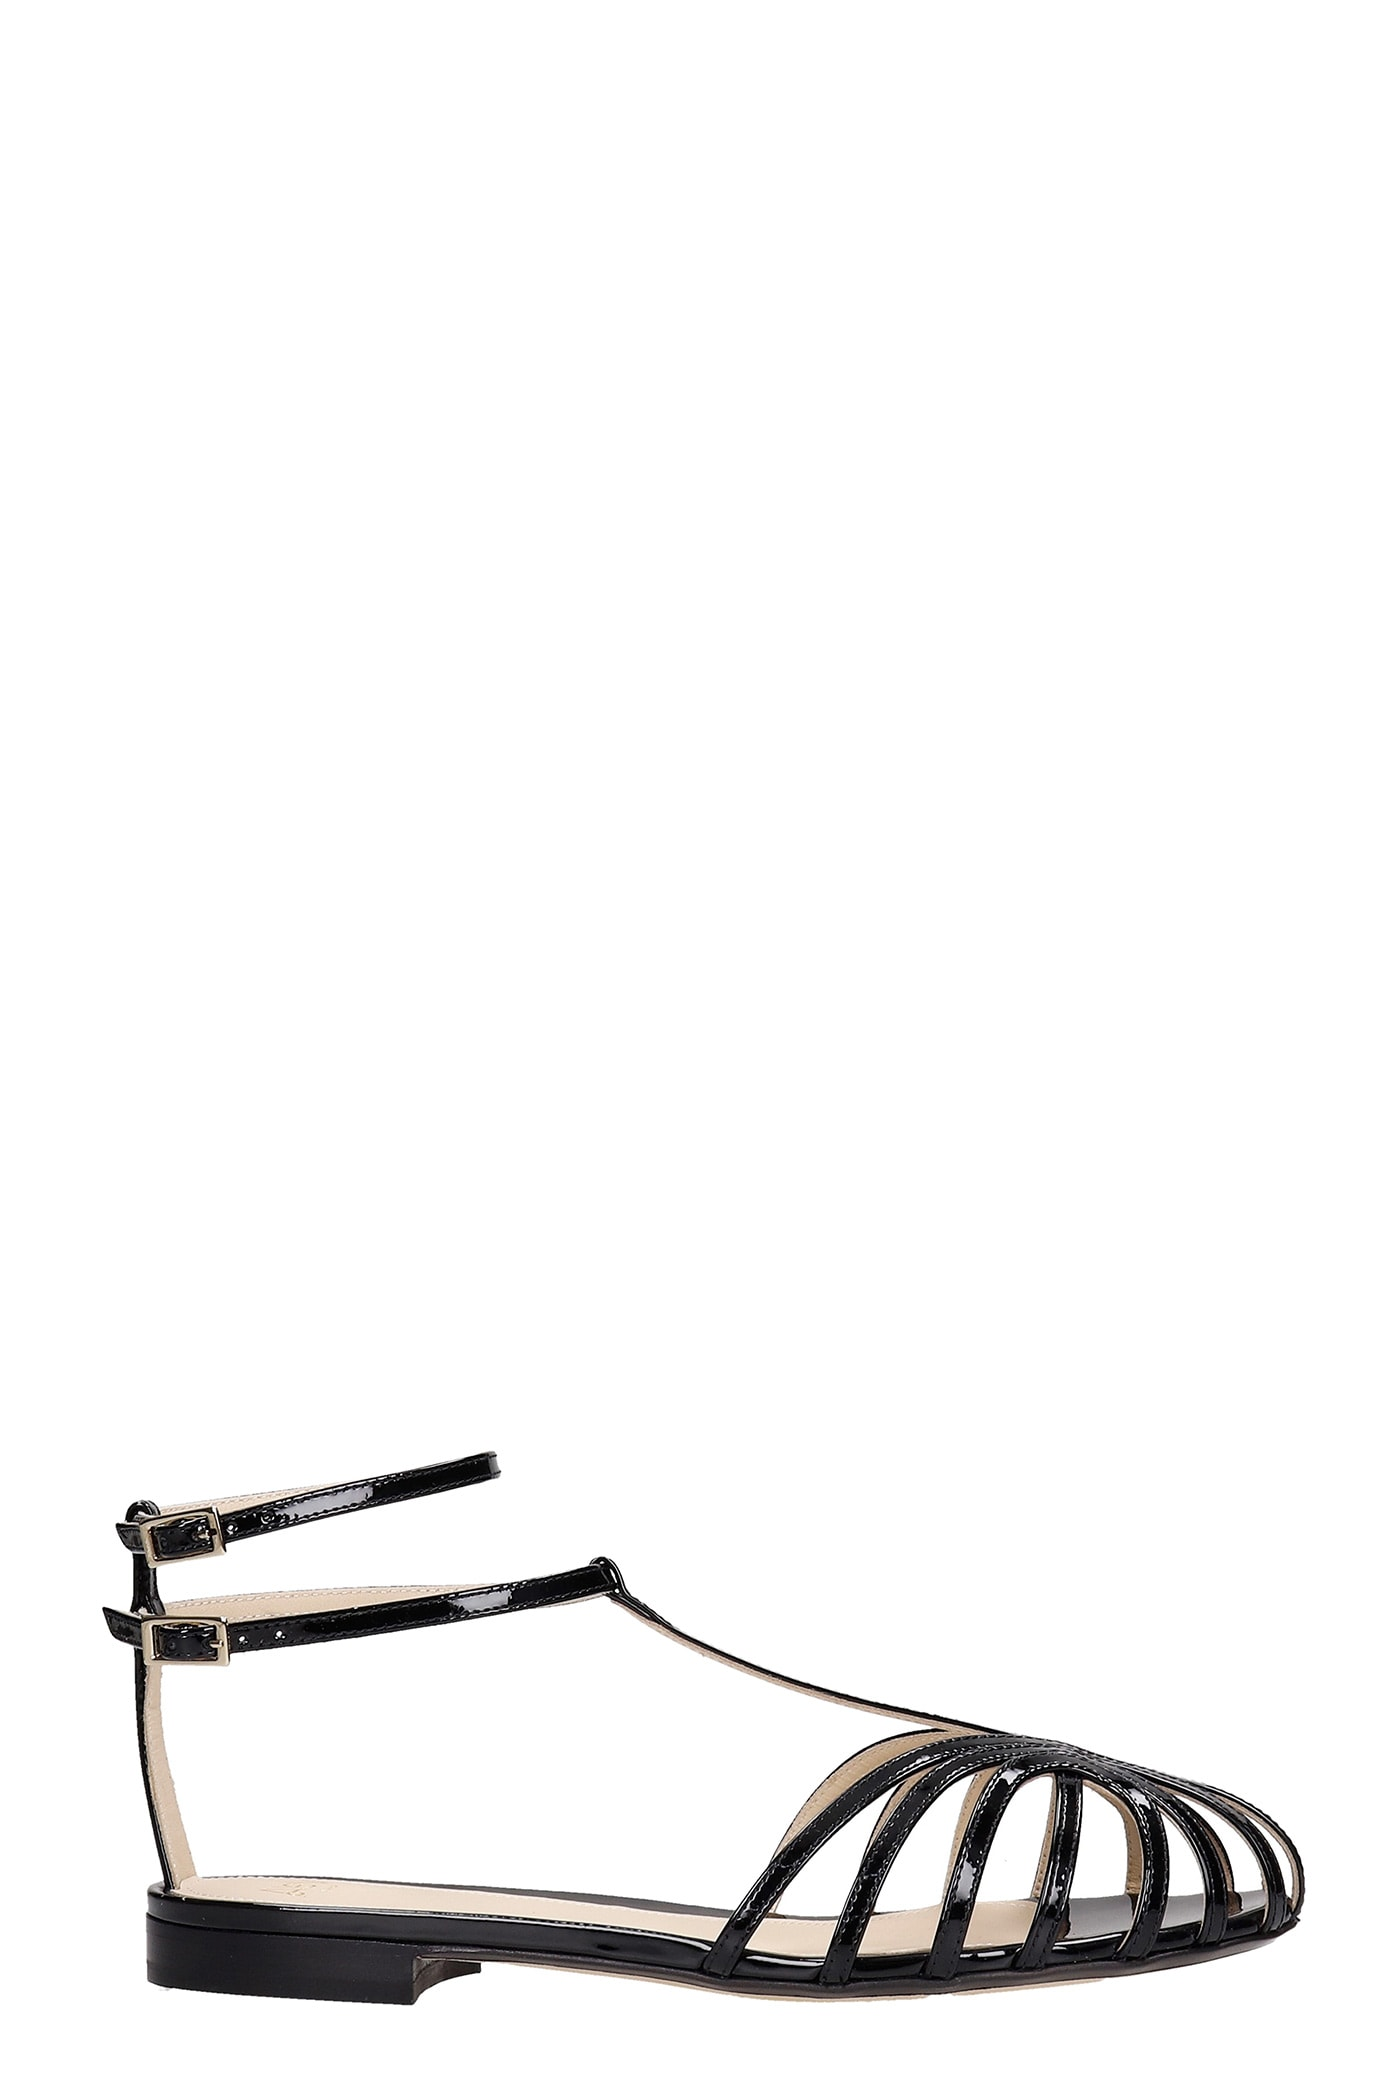 Alevì Leathers ELENA 10 FLATS IN BLACK PATENT LEATHER